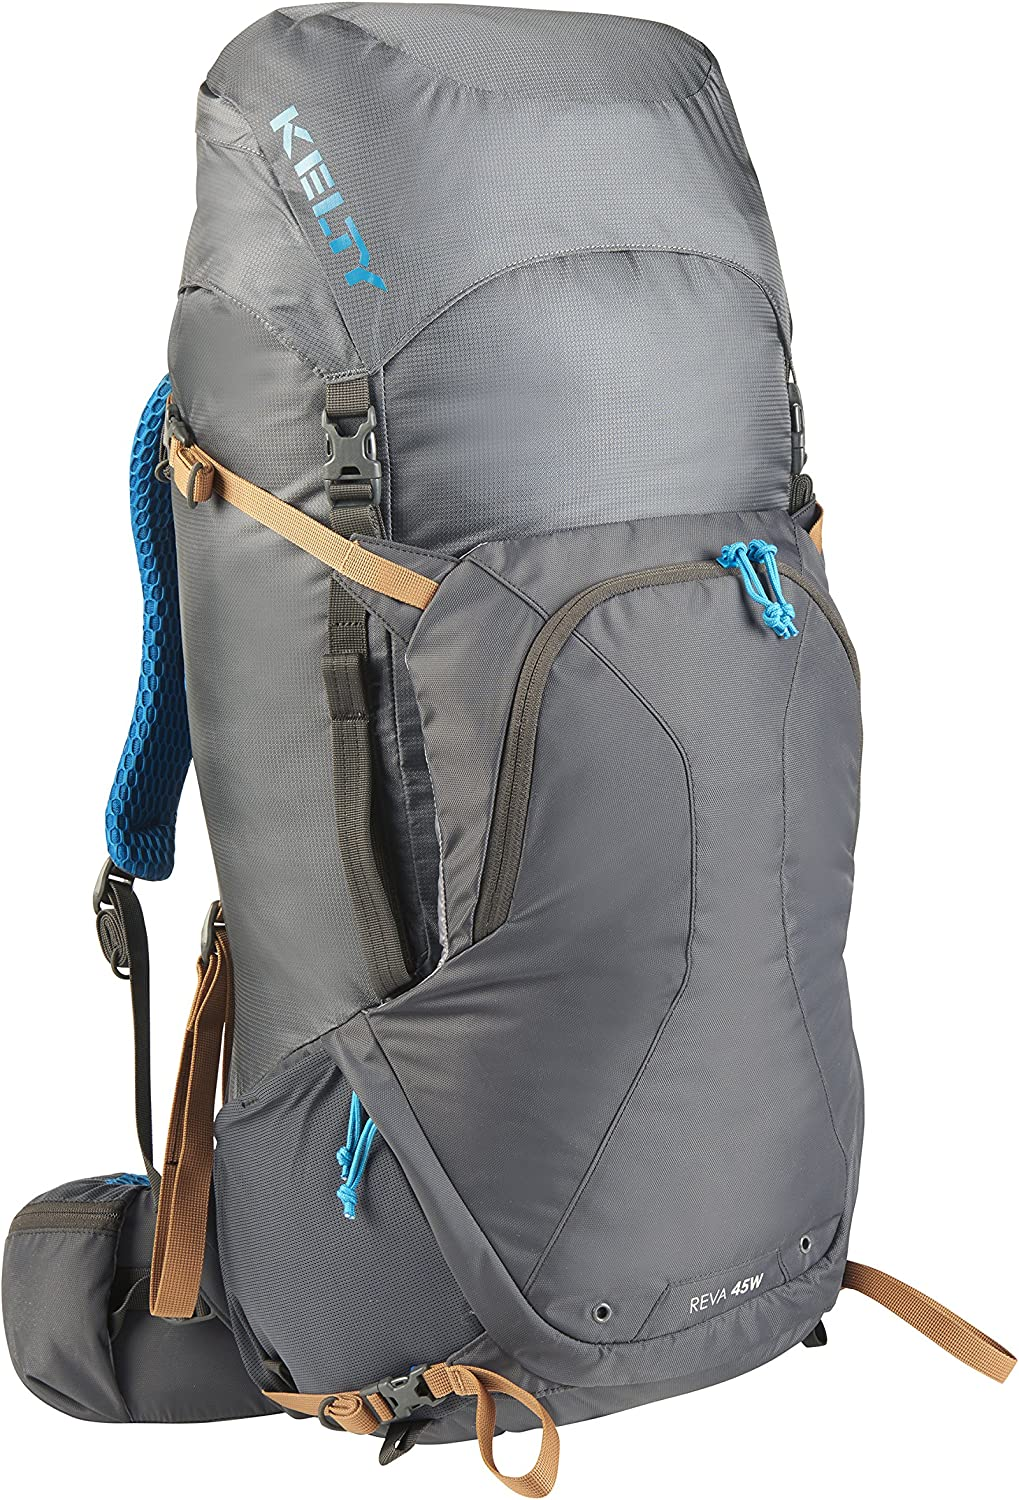 Kelty Women s Reva 45 Backpack, Castle Rock